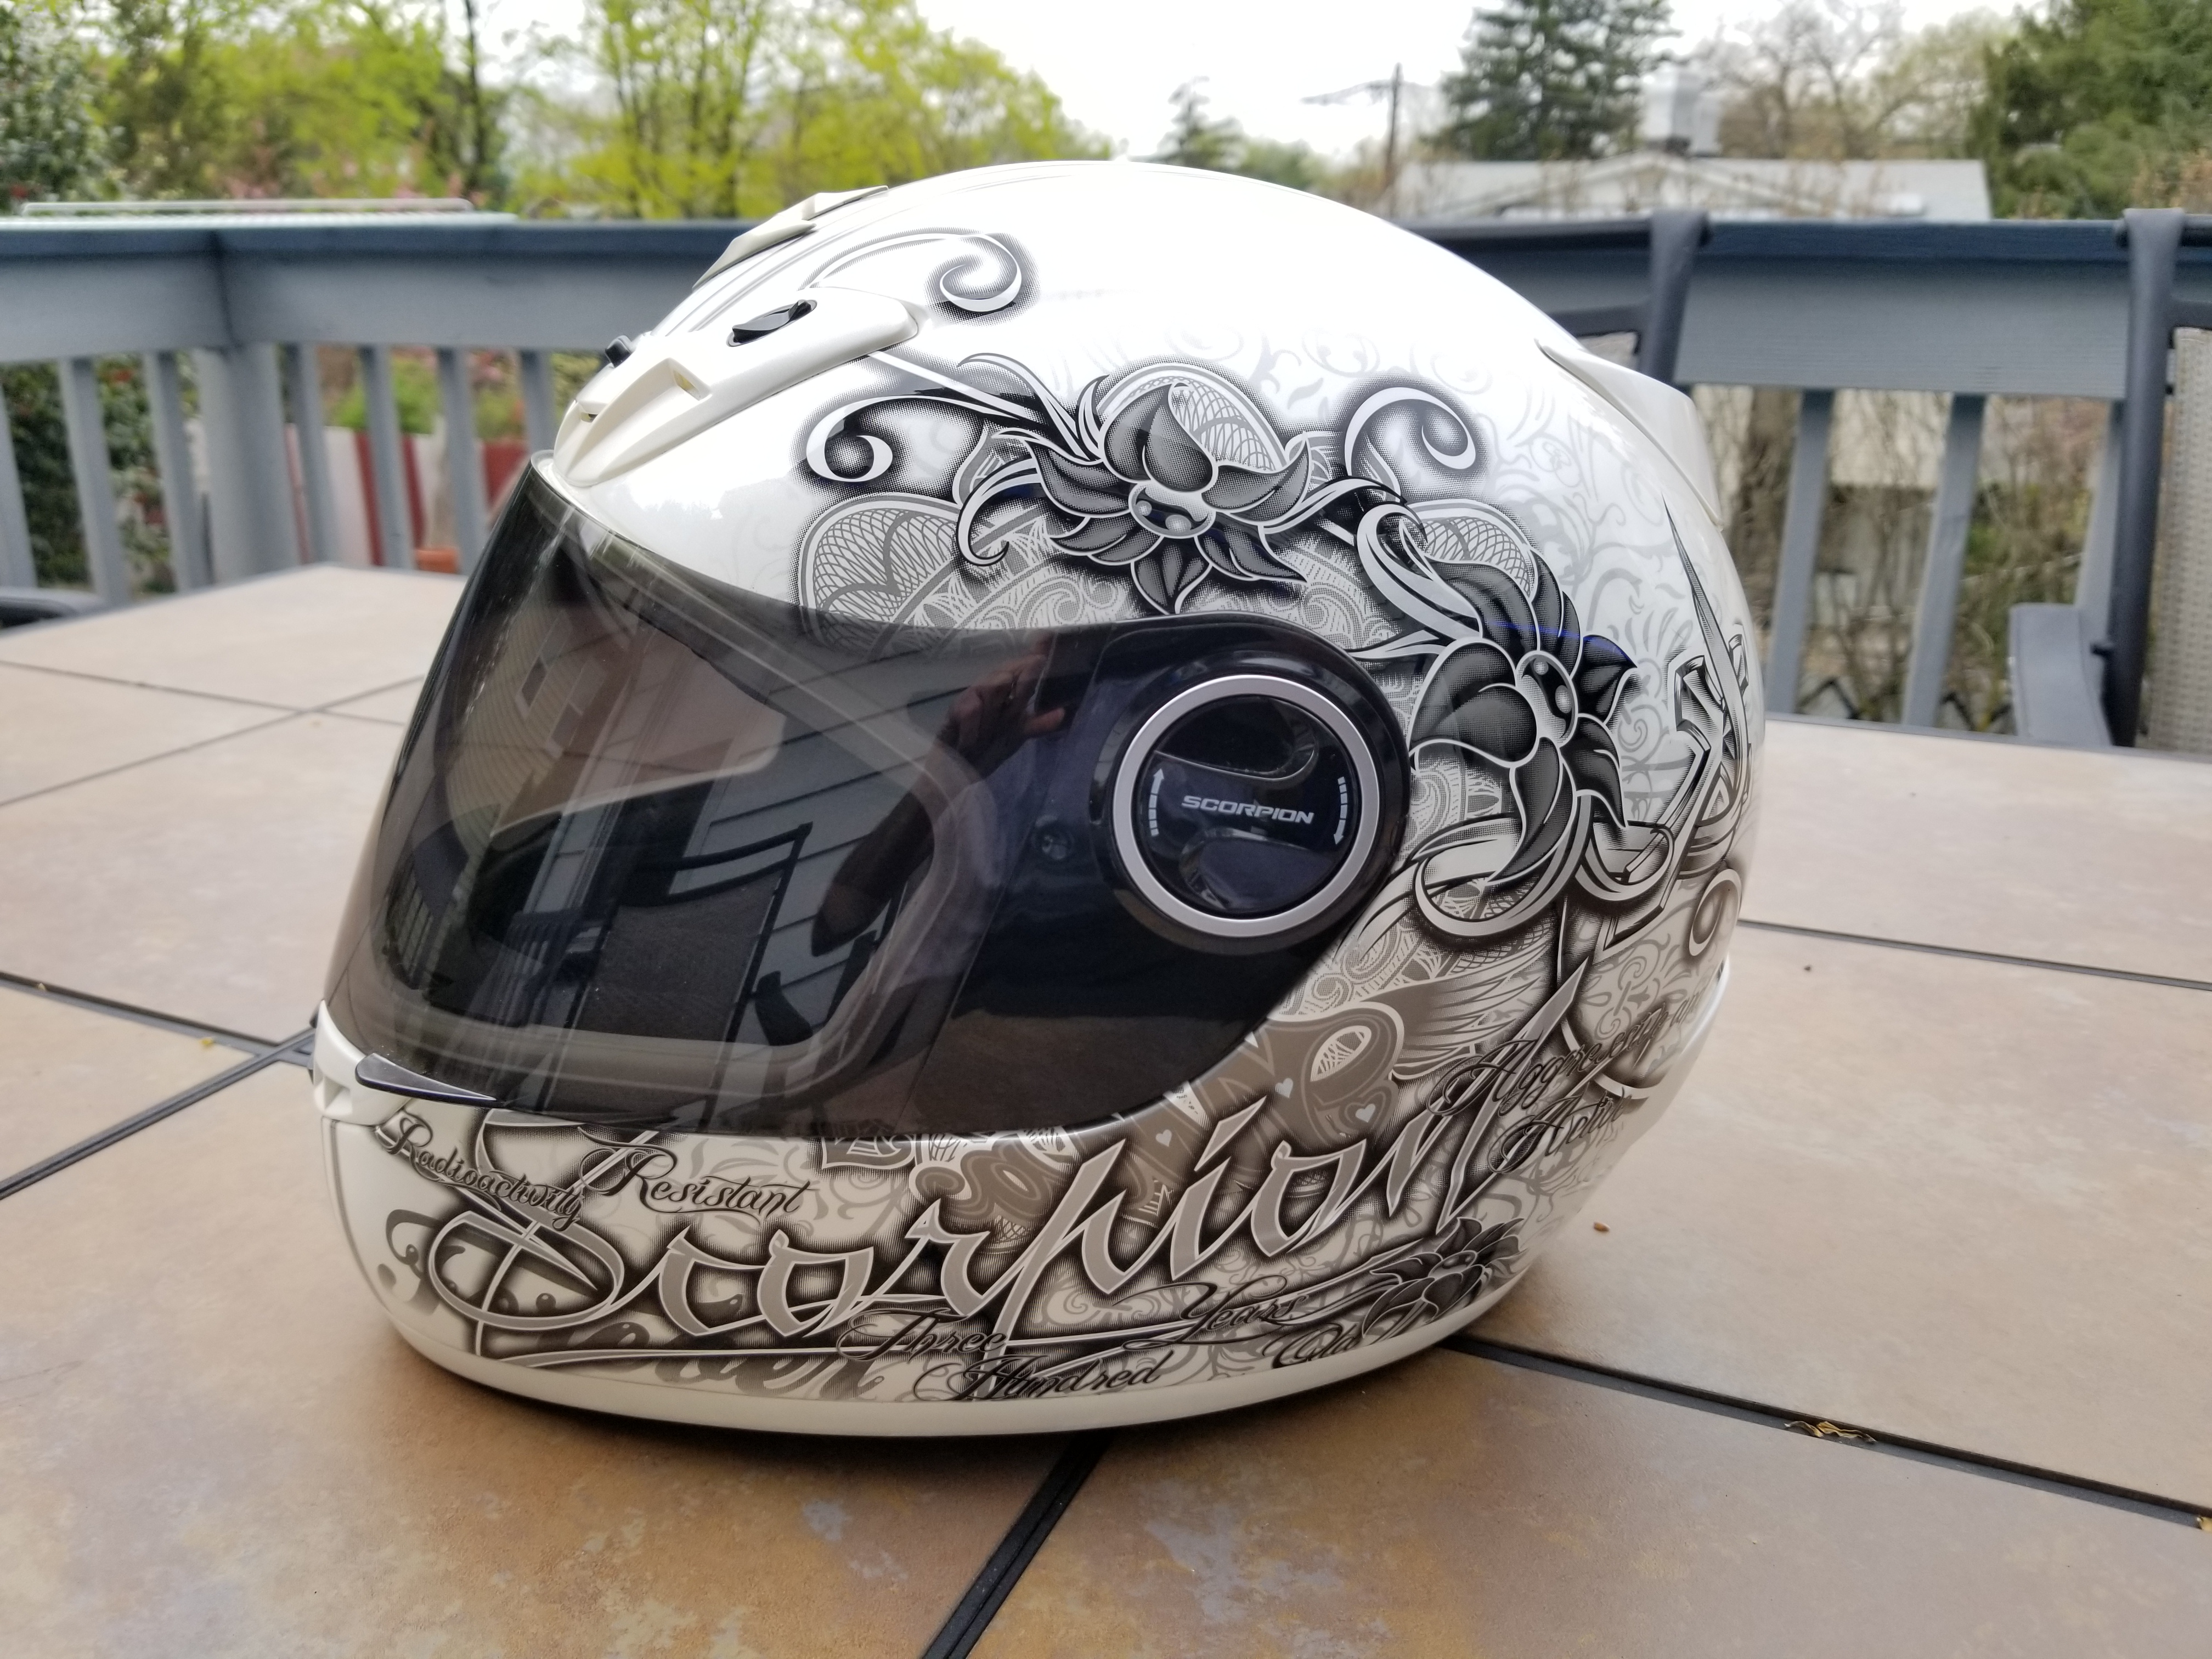 Scorpion Ann EXO-400 Street Motorcycle Helmet - Pearl White Extra Small XS-20190421_115242_1560210198871.jpg